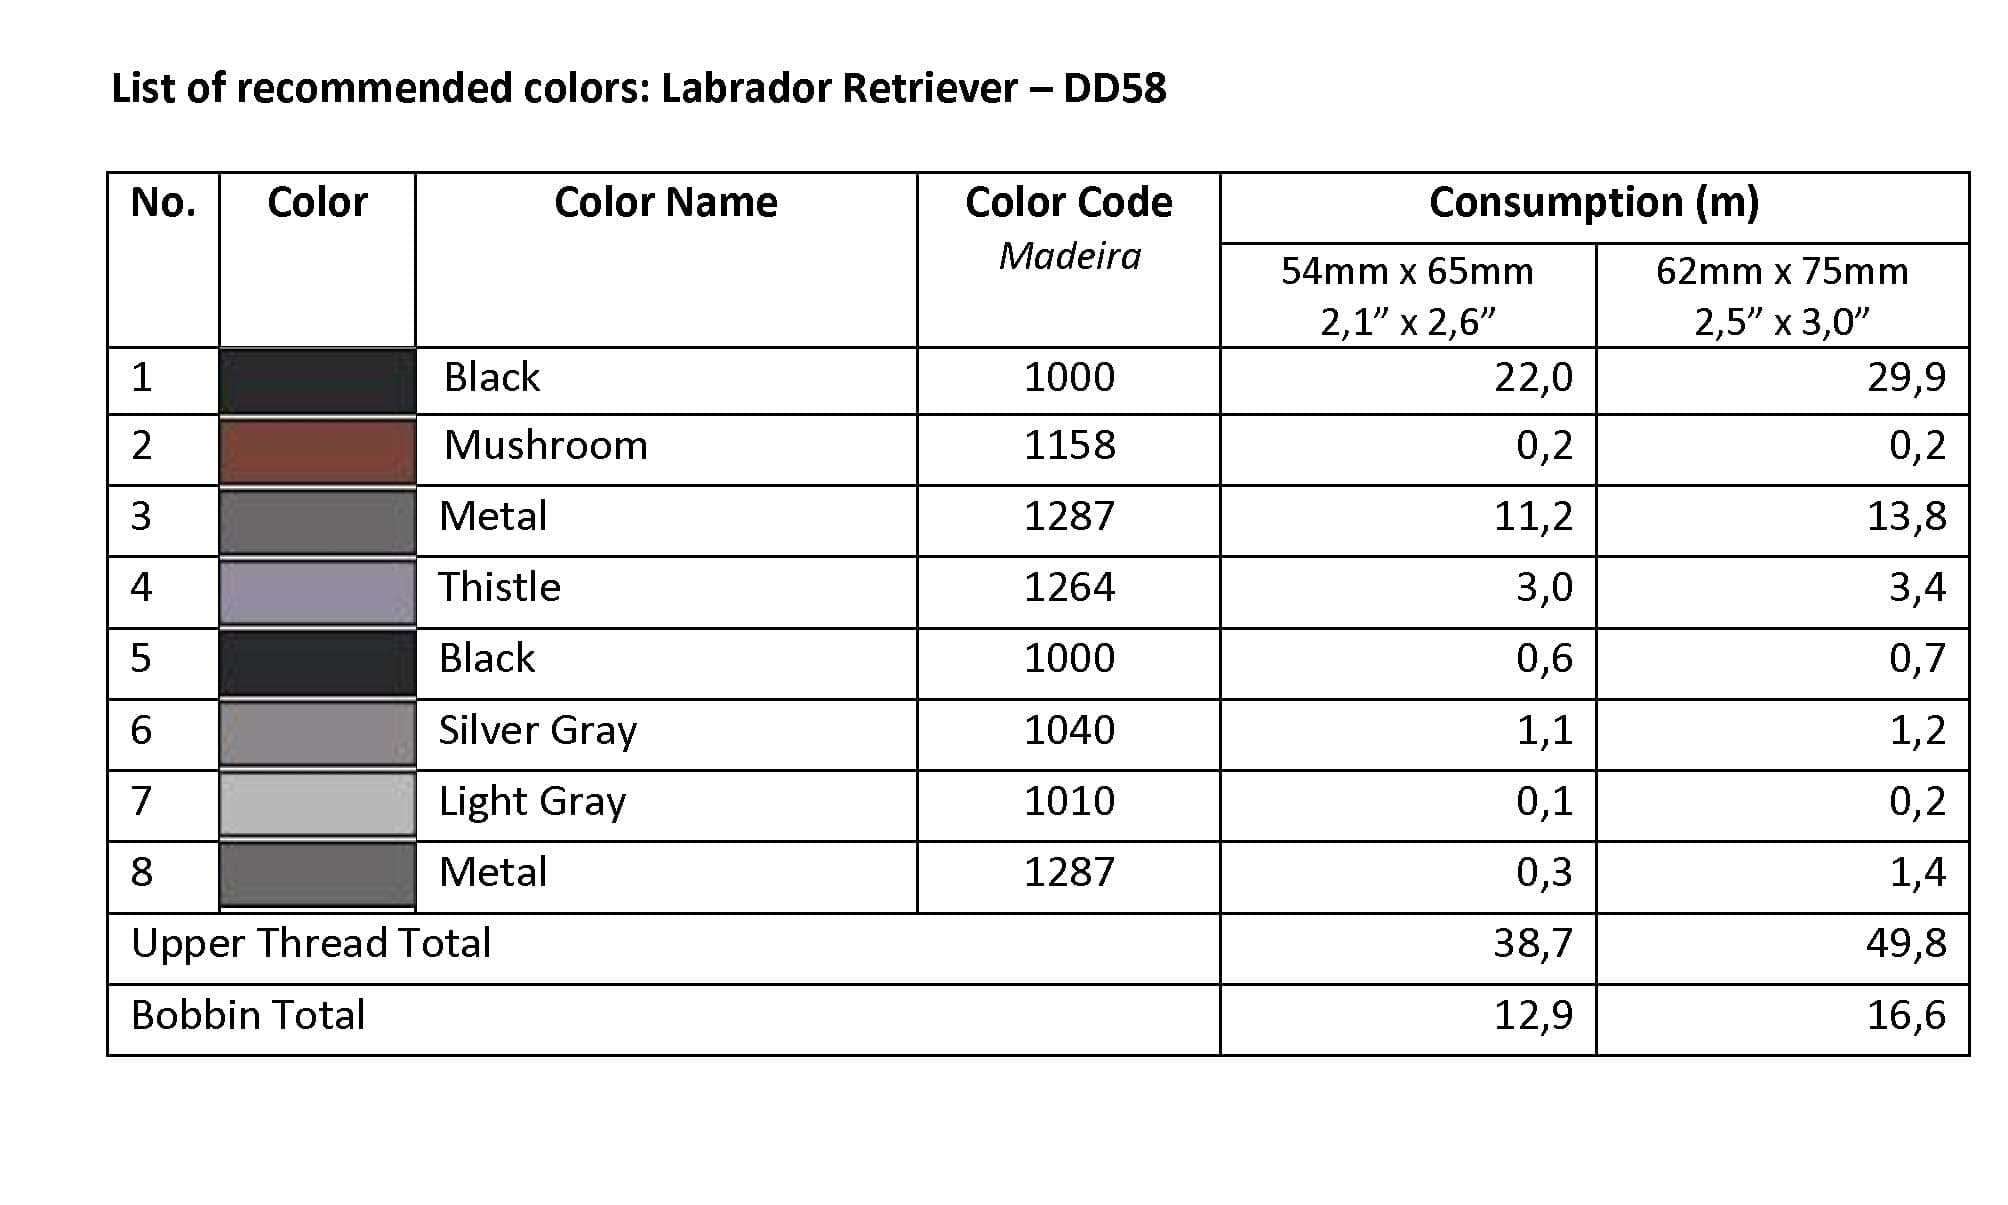 List of Recommended Colors -Labrador Retriever DD58